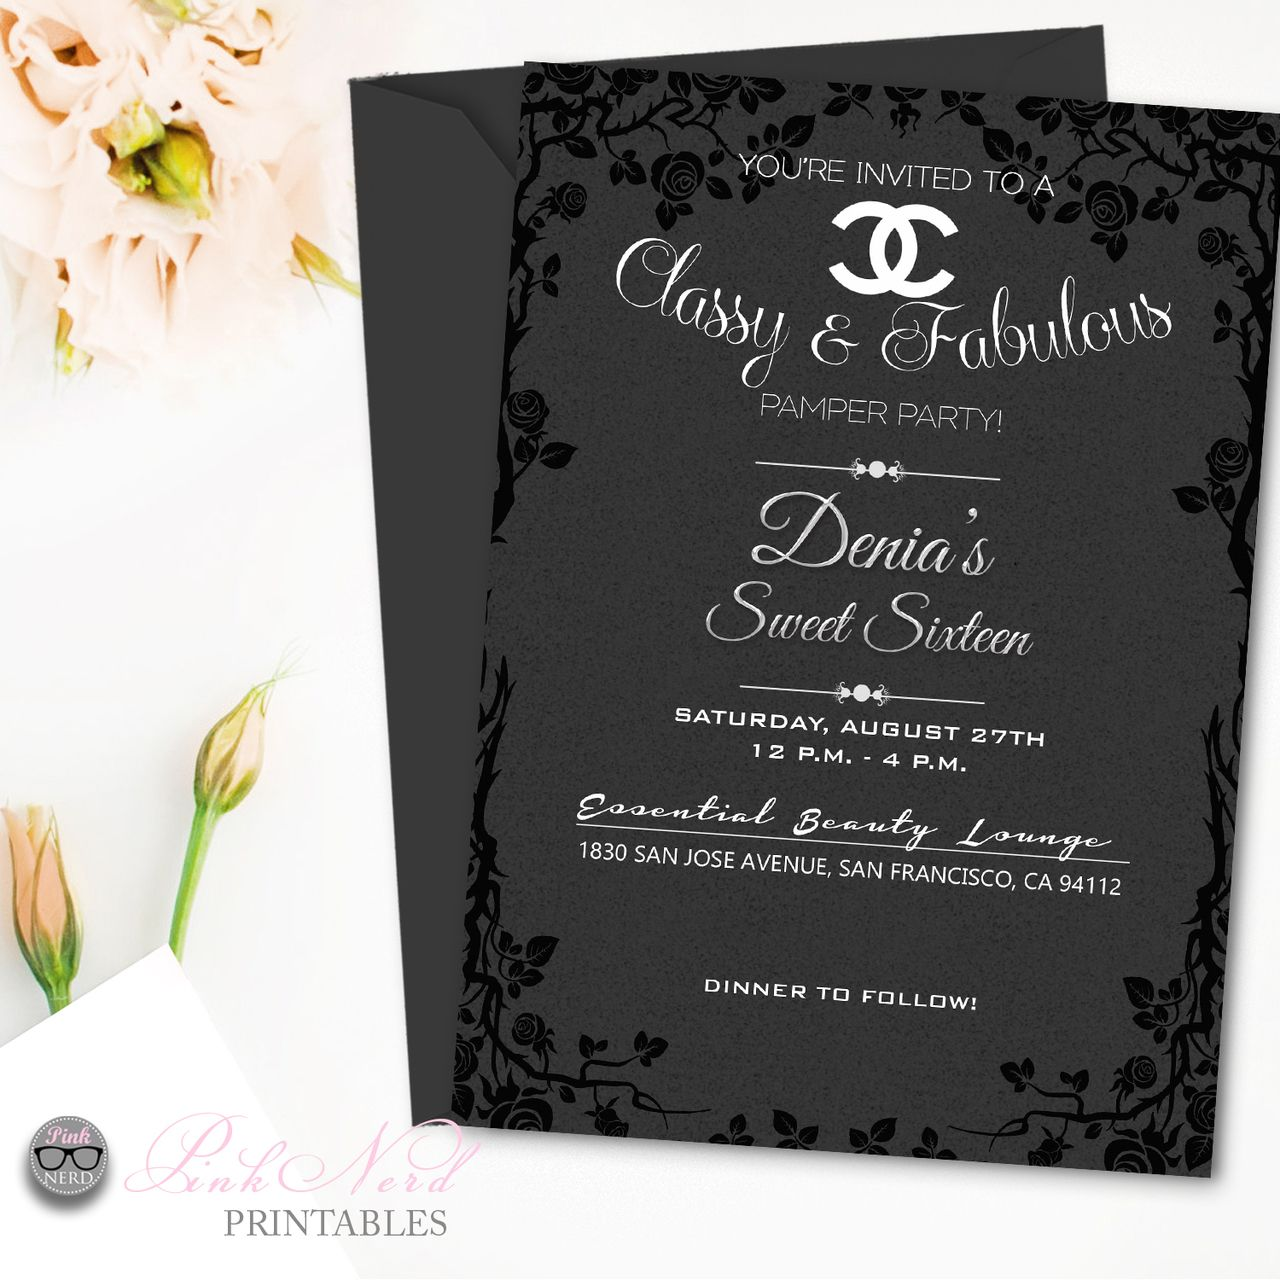 birthday party invitations printable%0A Black and gray chanel inspired birthday invitation printable chanel floral  invitation black elegant Chanel Inspired Party